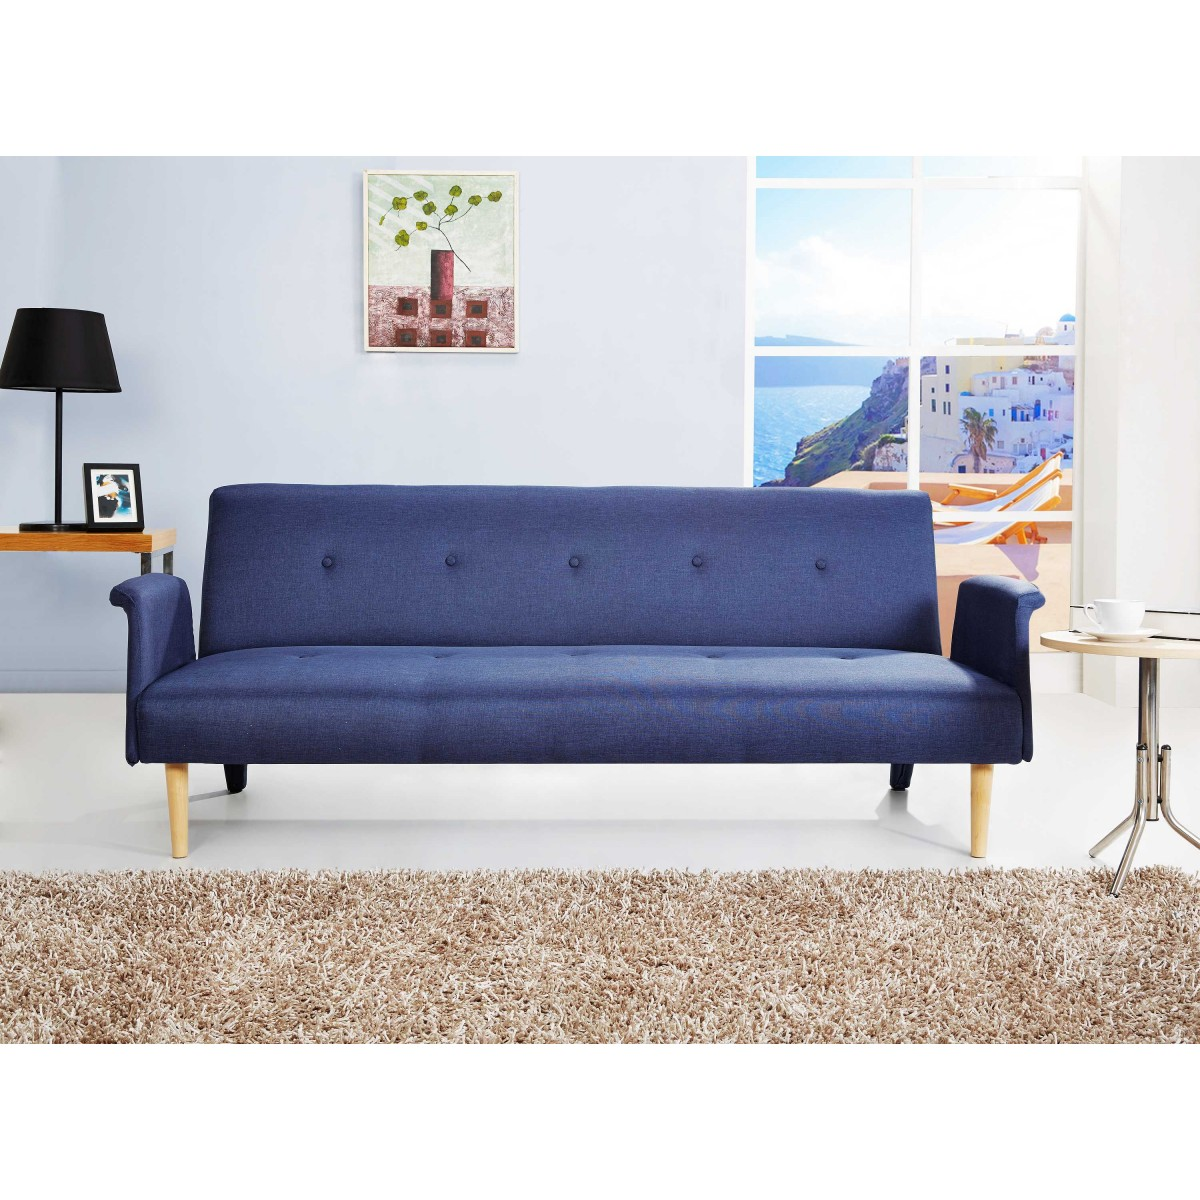 Julio 2015 ministry of deco for Sofa cama rebajas